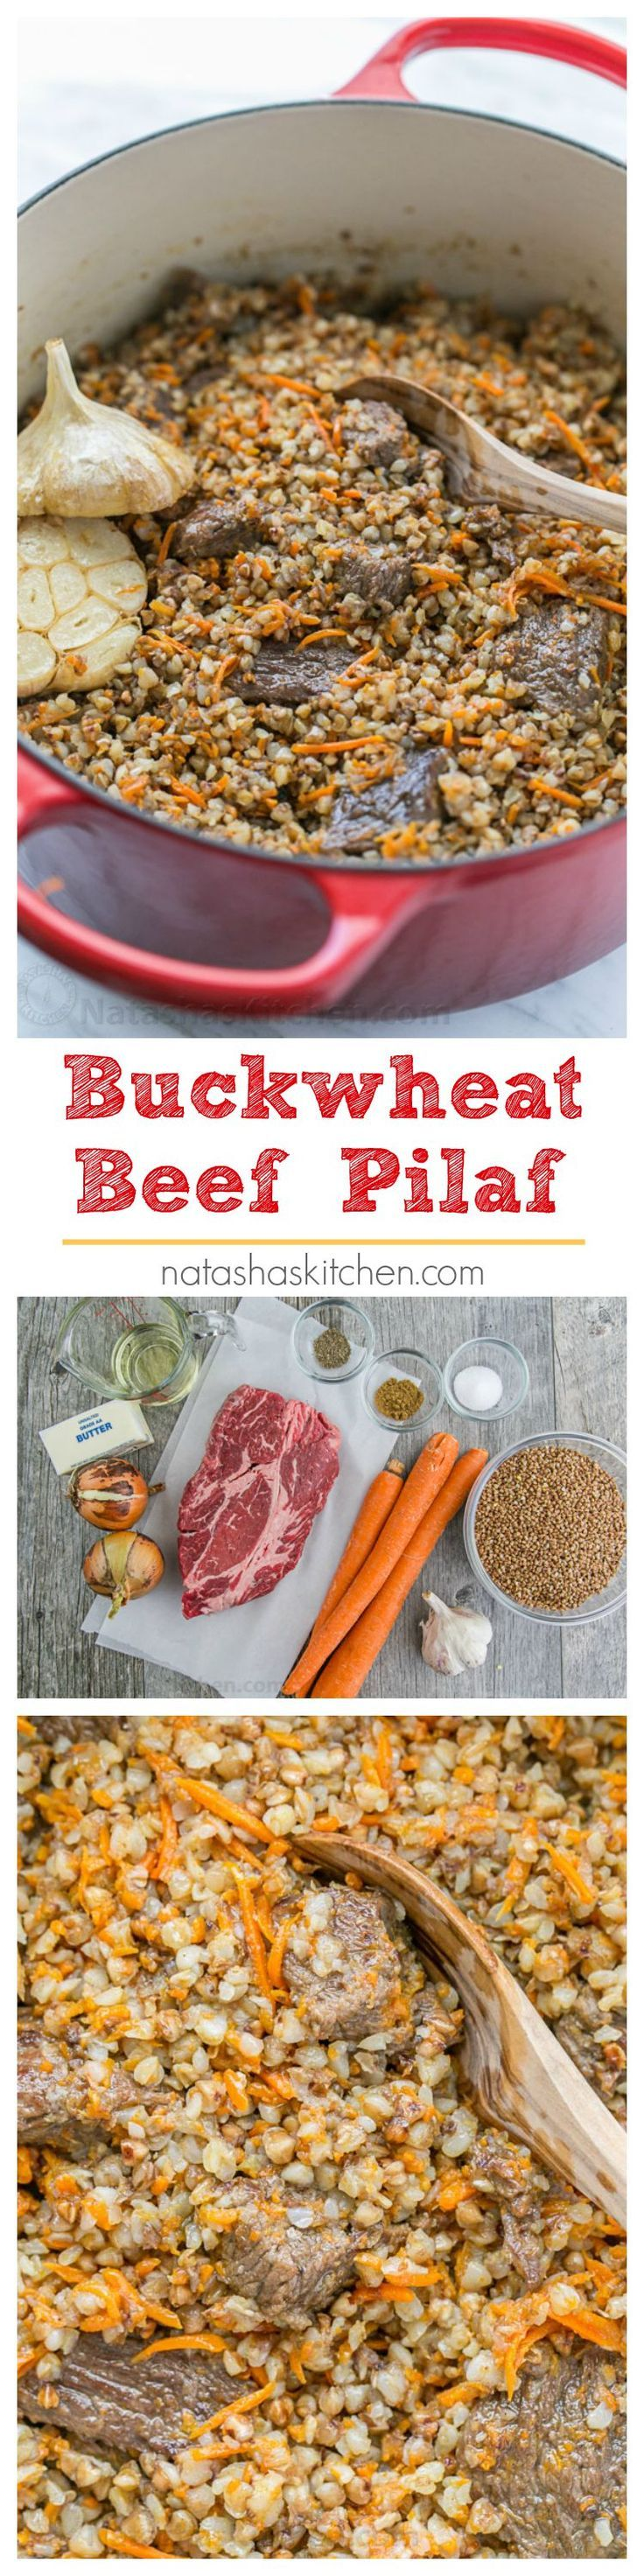 Buckwheat Is A Total Superfood I Love This Buckwheat Recipe The Most Buckwheat Pilaf With Fall Apart Tender Beef Simple And Food Buckwheat Recipes Recipes